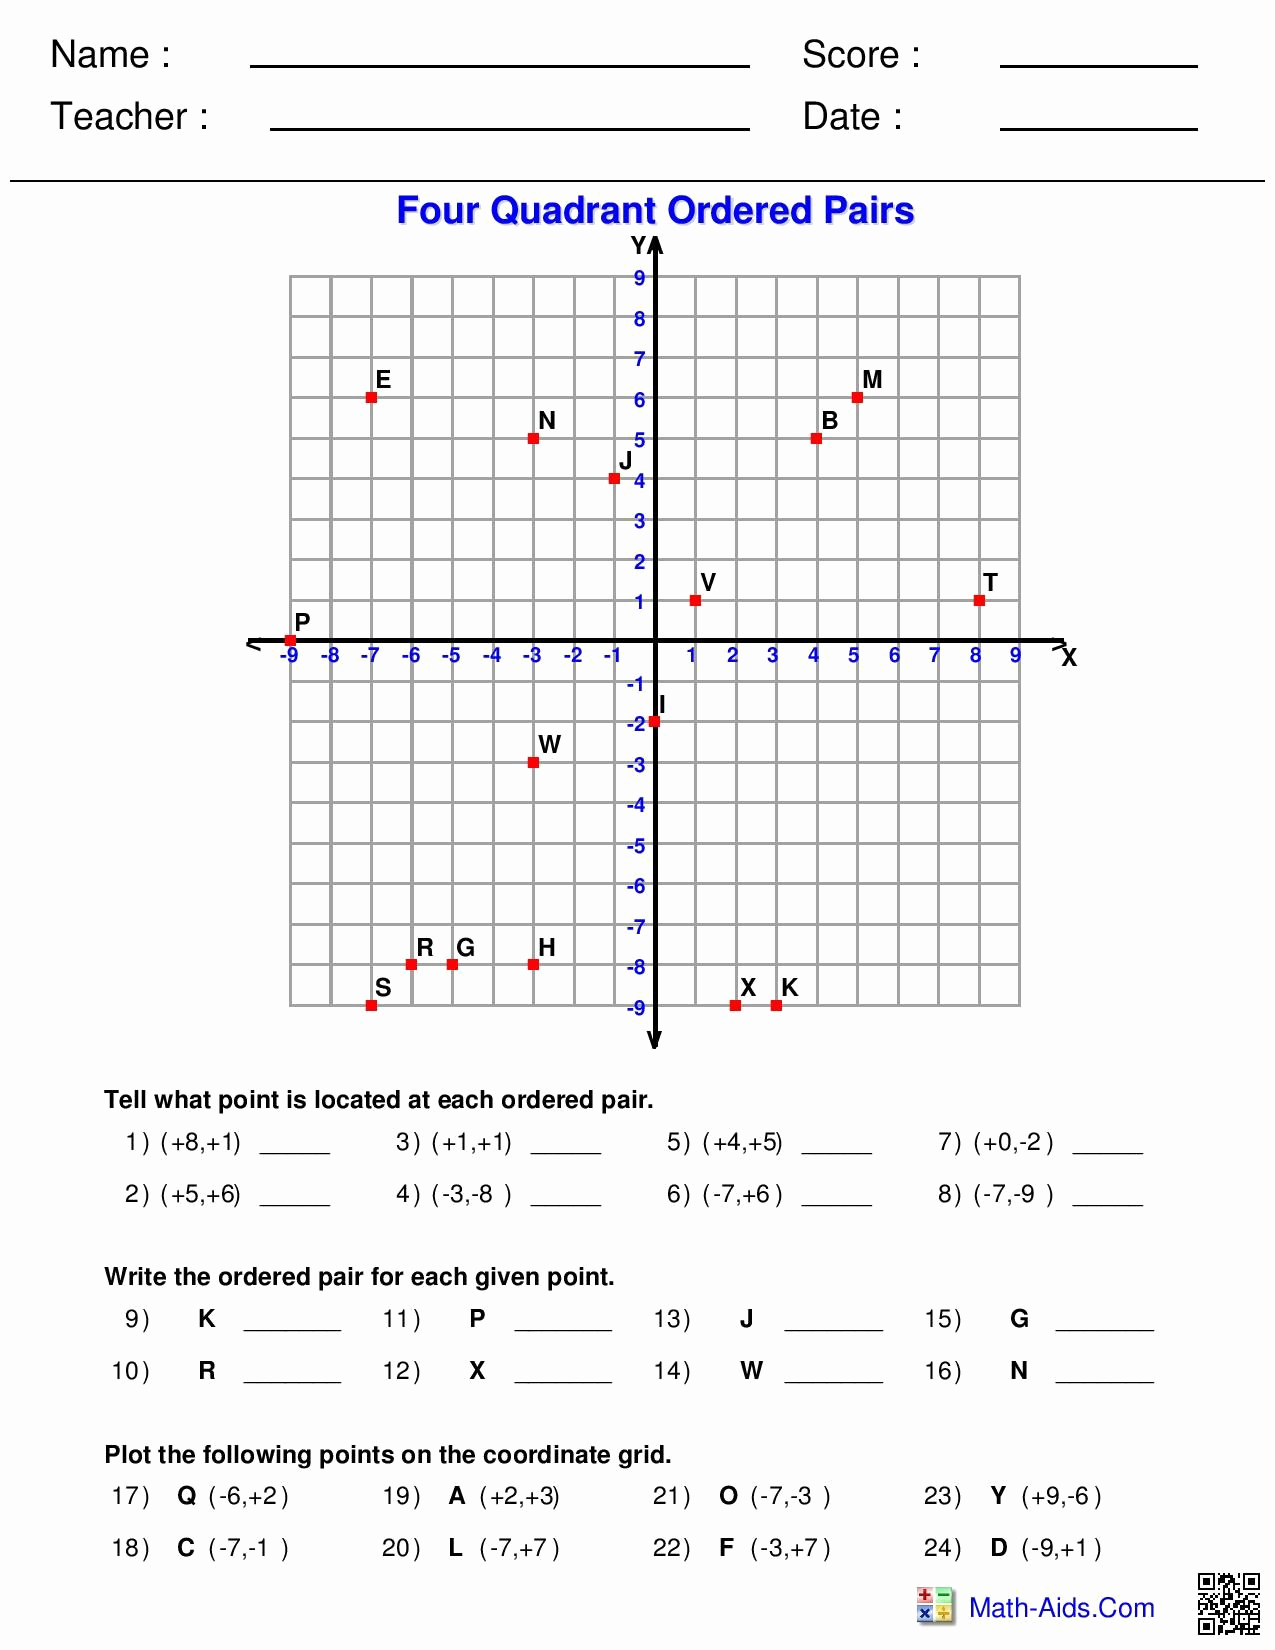 Ordered Pairs Worksheets Fresh Four Quadrant ordered Pairs Worksheet